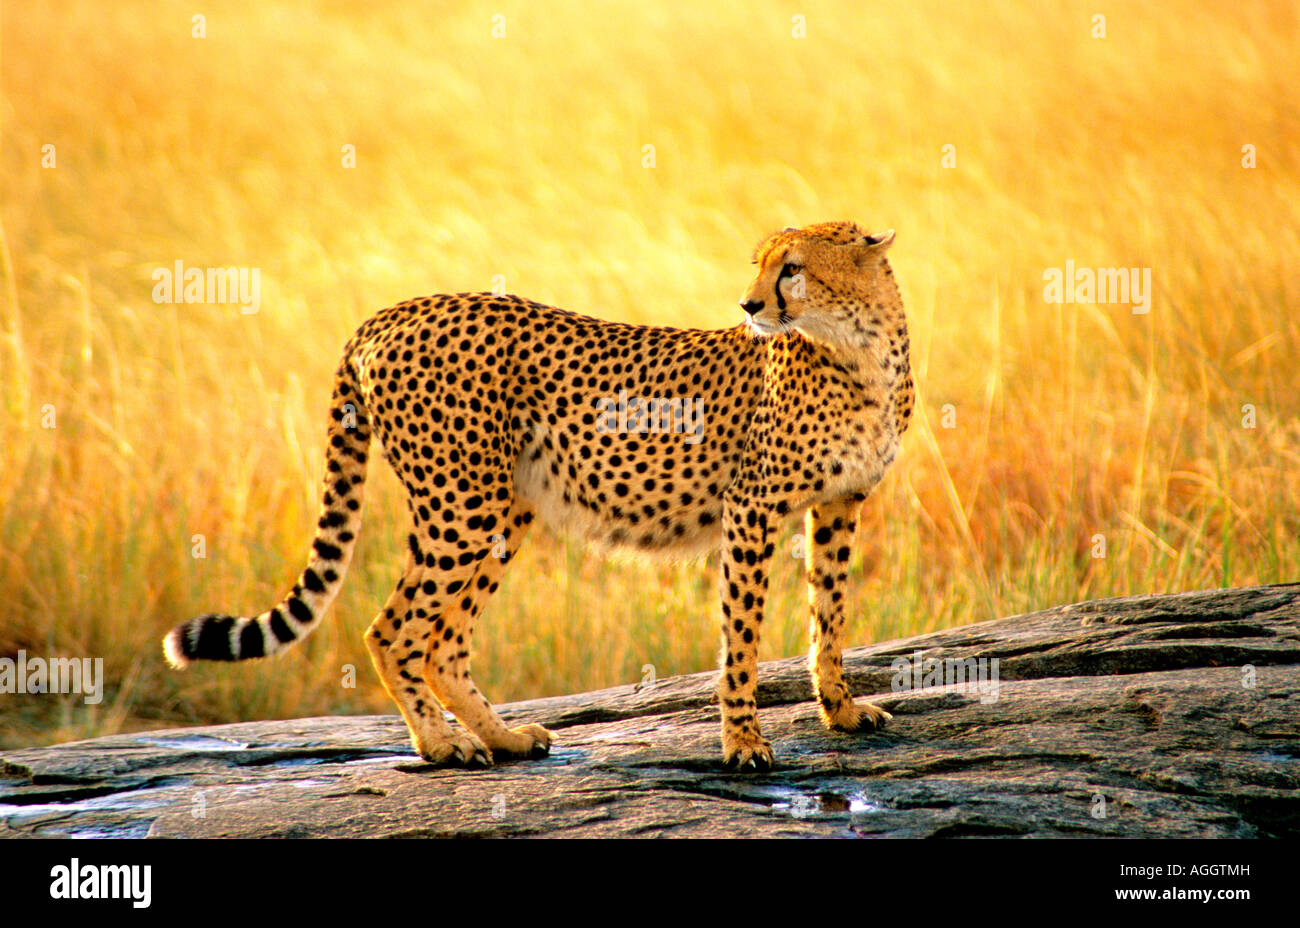 Cheetah posing on a rocky outcrop in the Masai Mara Kenya Africa - Stock Image